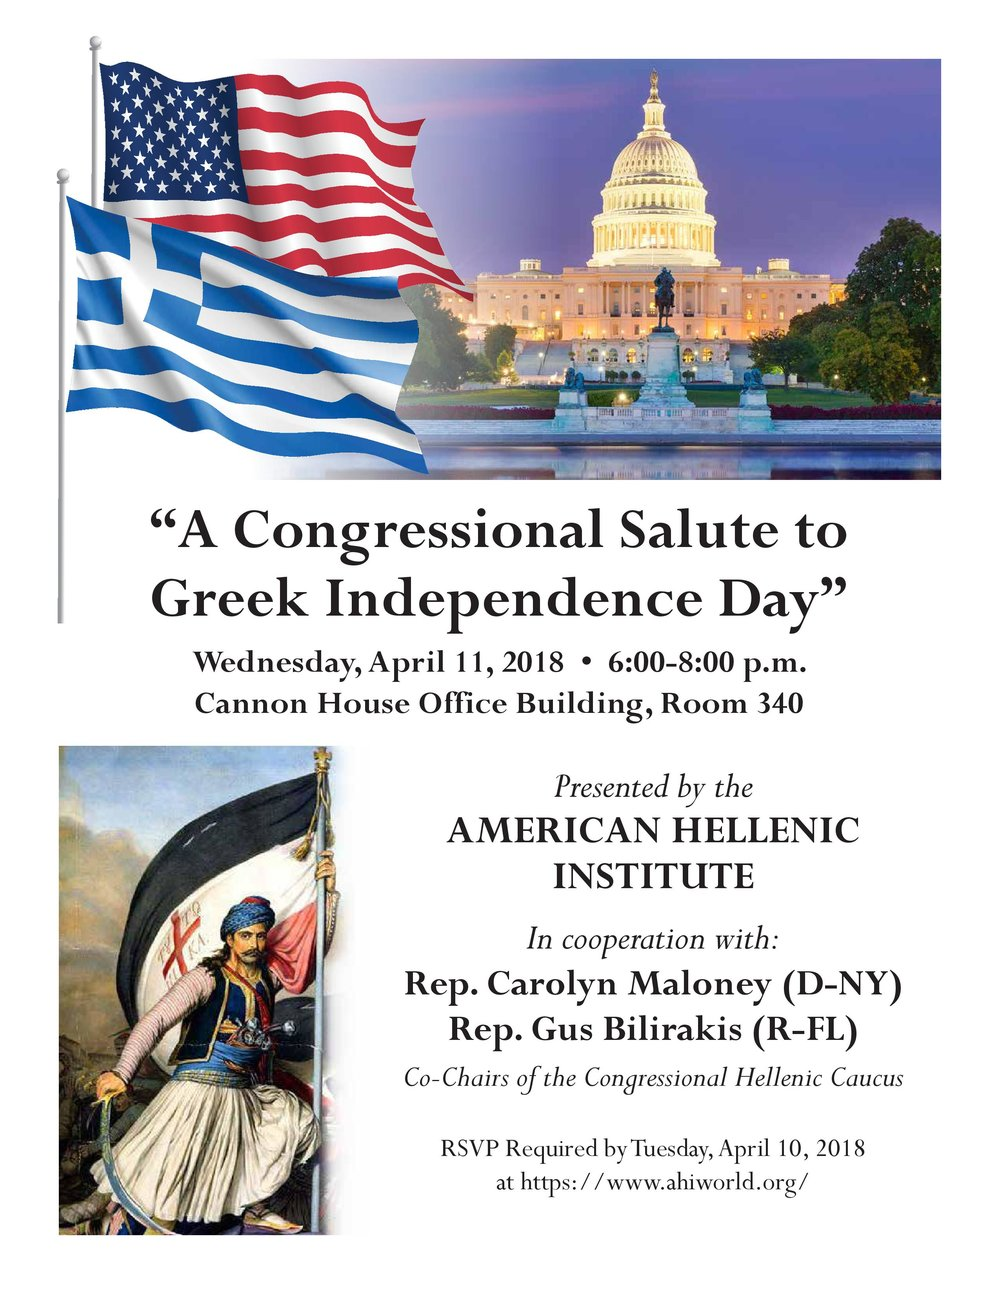 AHI Congressional_Greek Independence Flyer.jpg